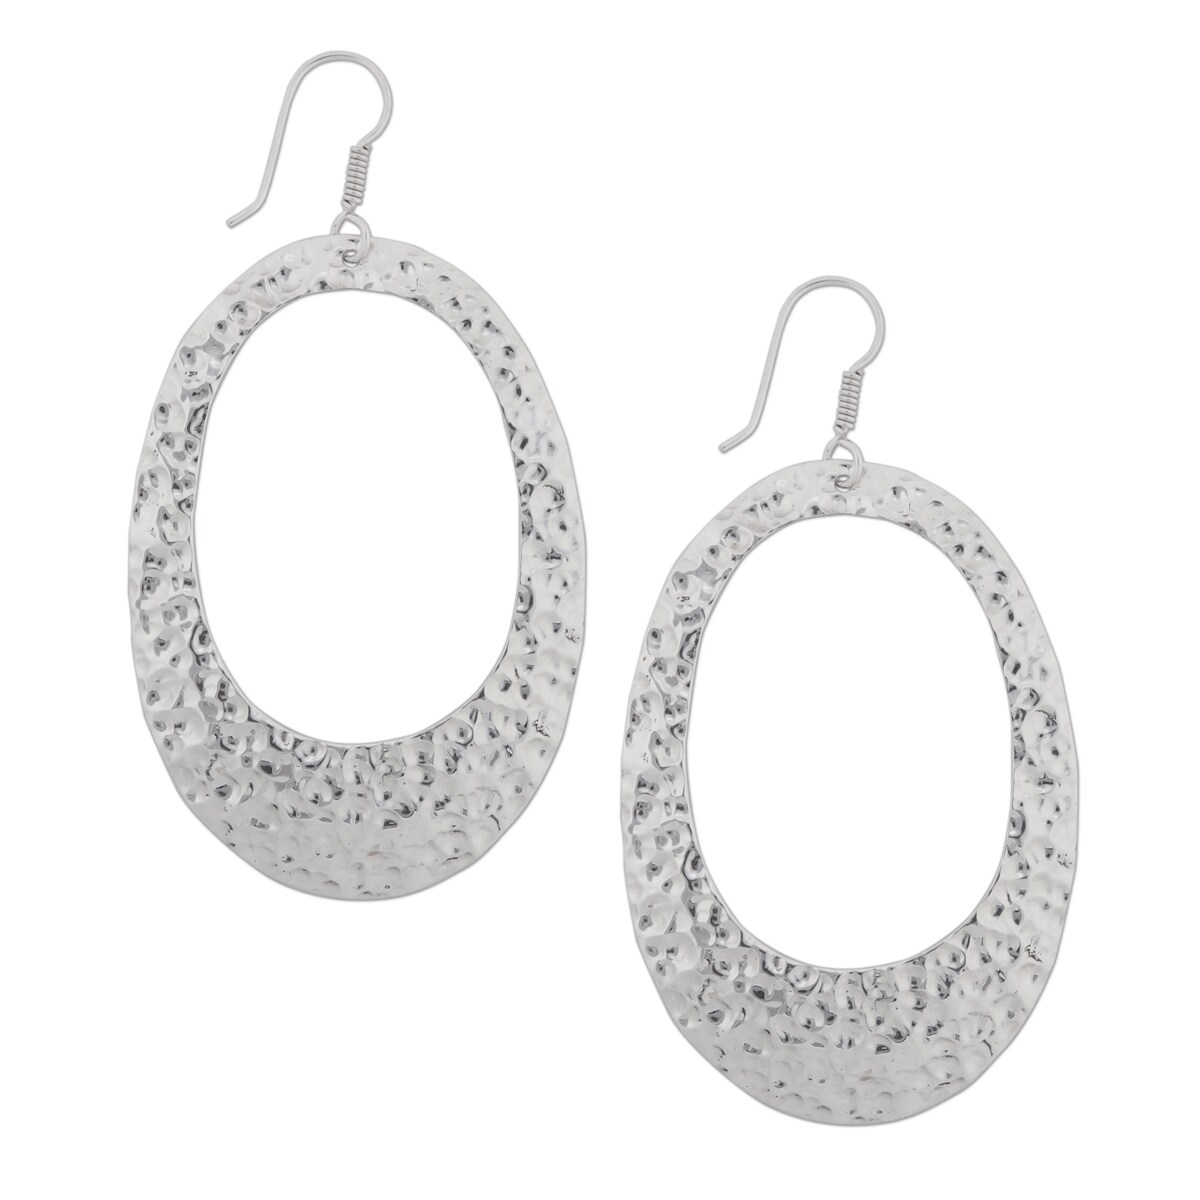 Handmade Sterling Silver Hammered Earrings Mexico On Free Shipping Today 15648443